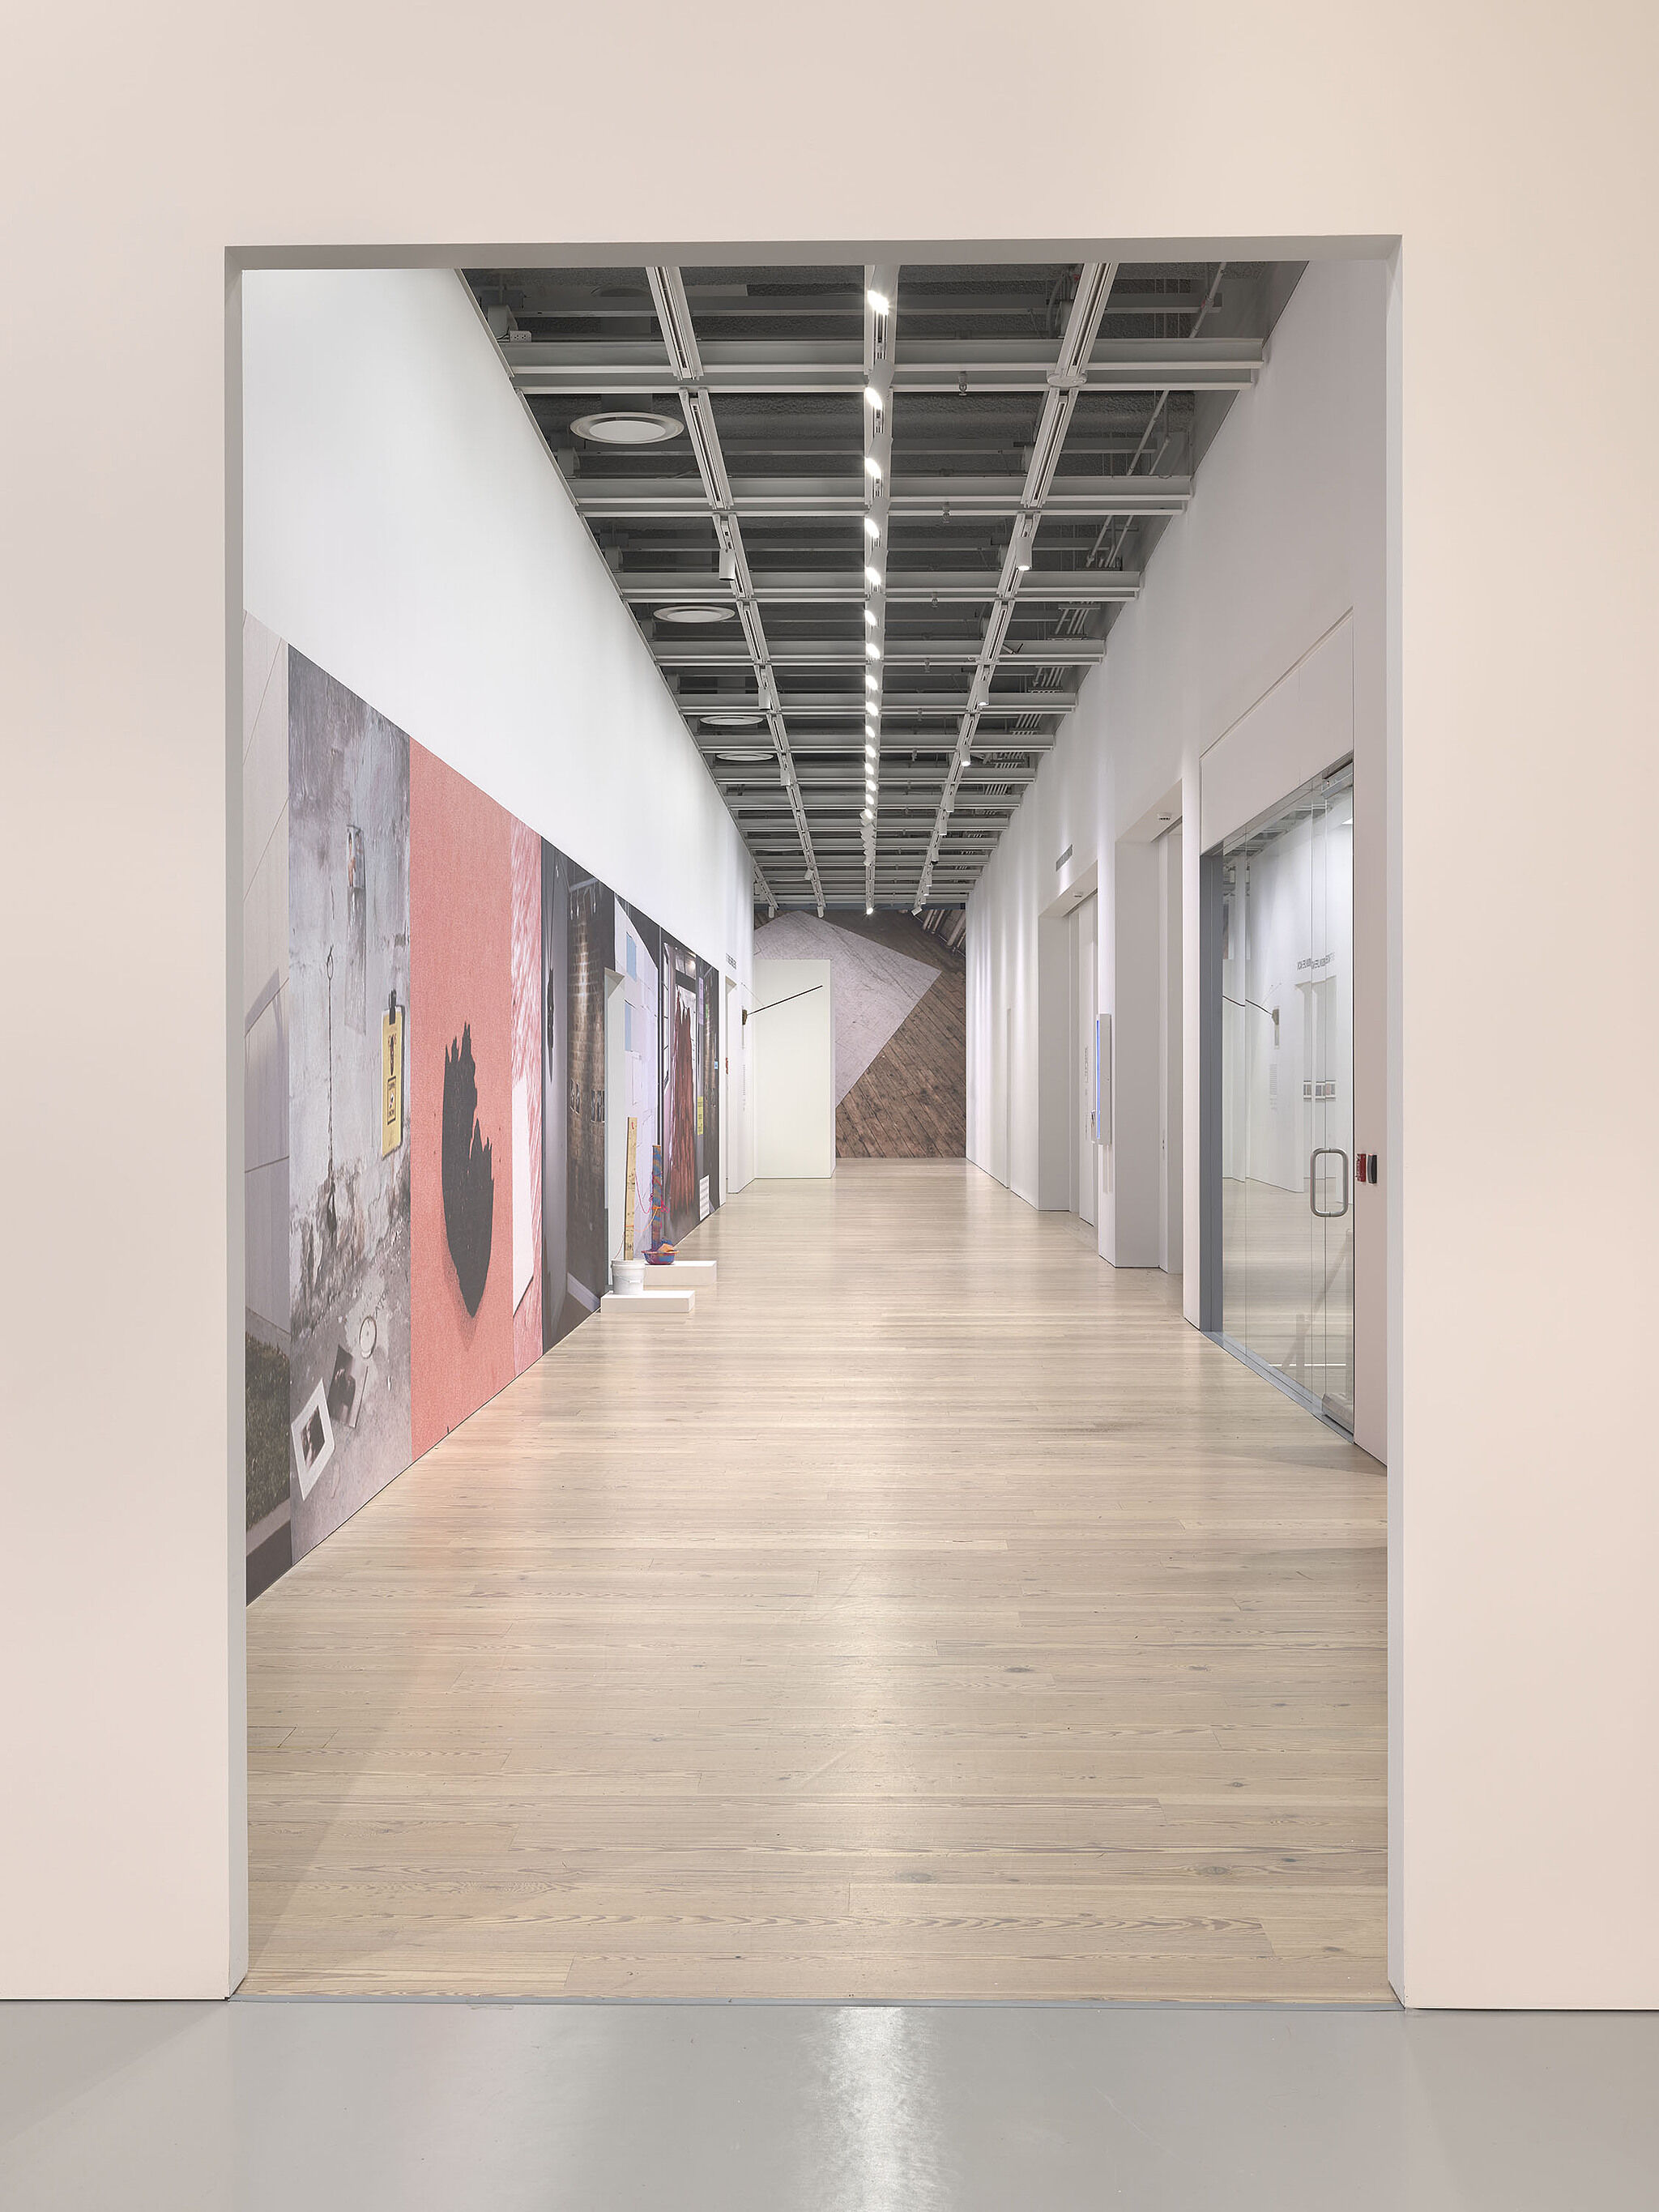 An image of a hallway in the Whitney galleries with various photos on the wall.